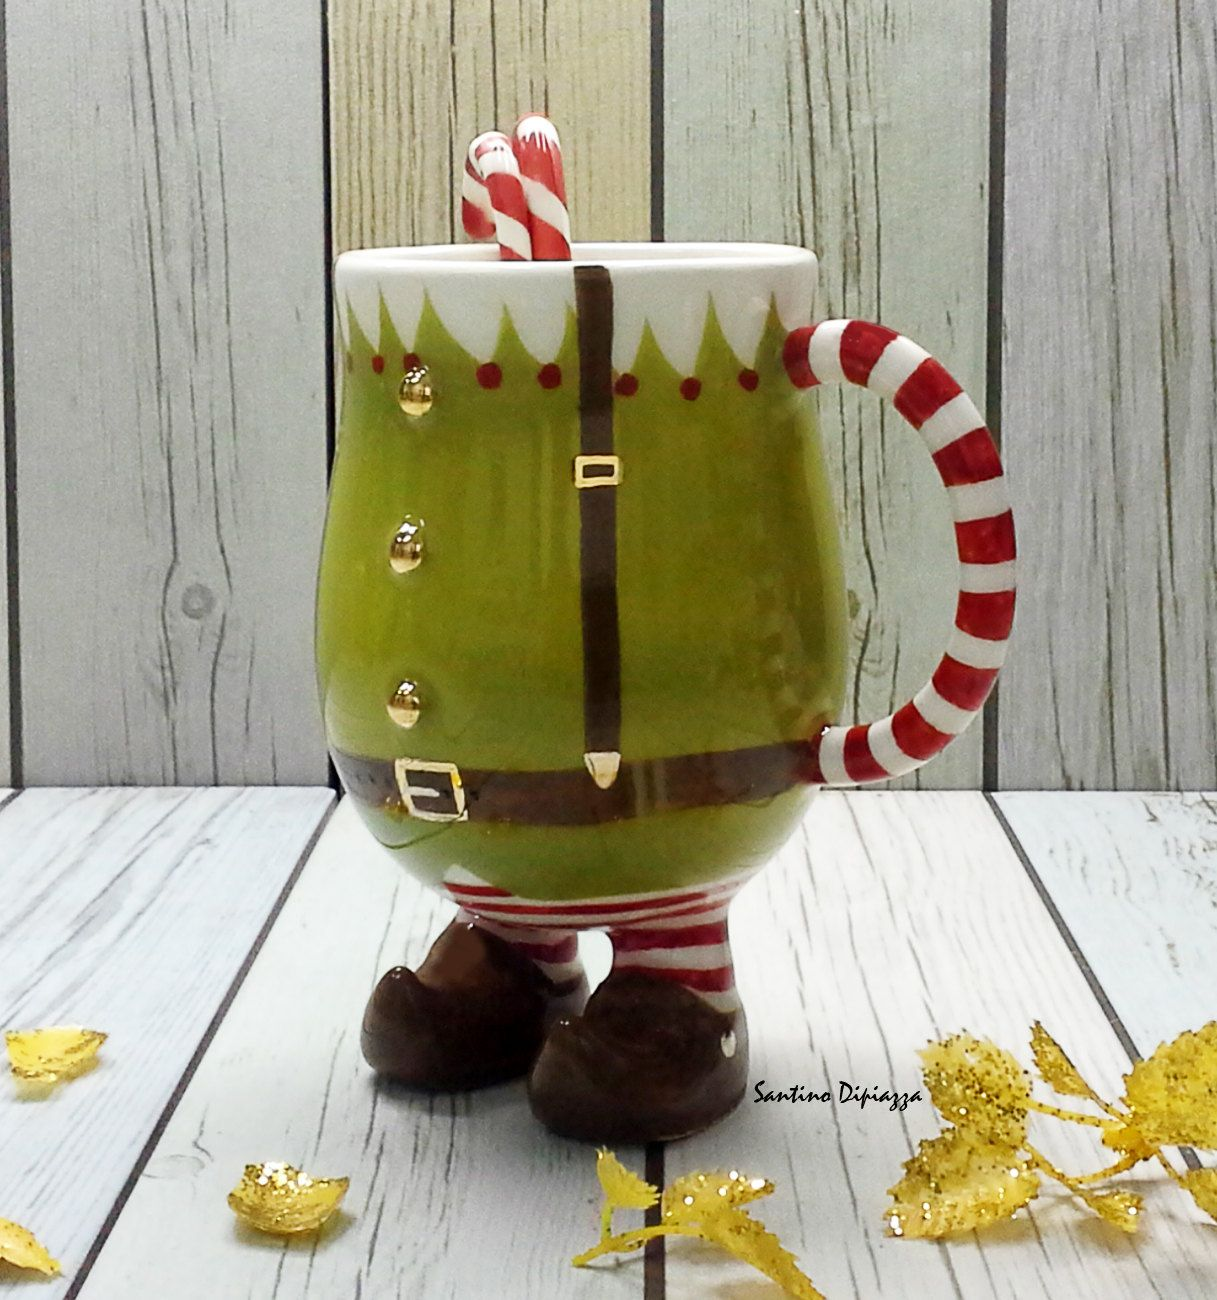 Green Elf Coffee Mug Christmas Gift Cup Candy Cane Mugs Etsy In 2021 Mugs Christmas Coffee Pottery Mugs